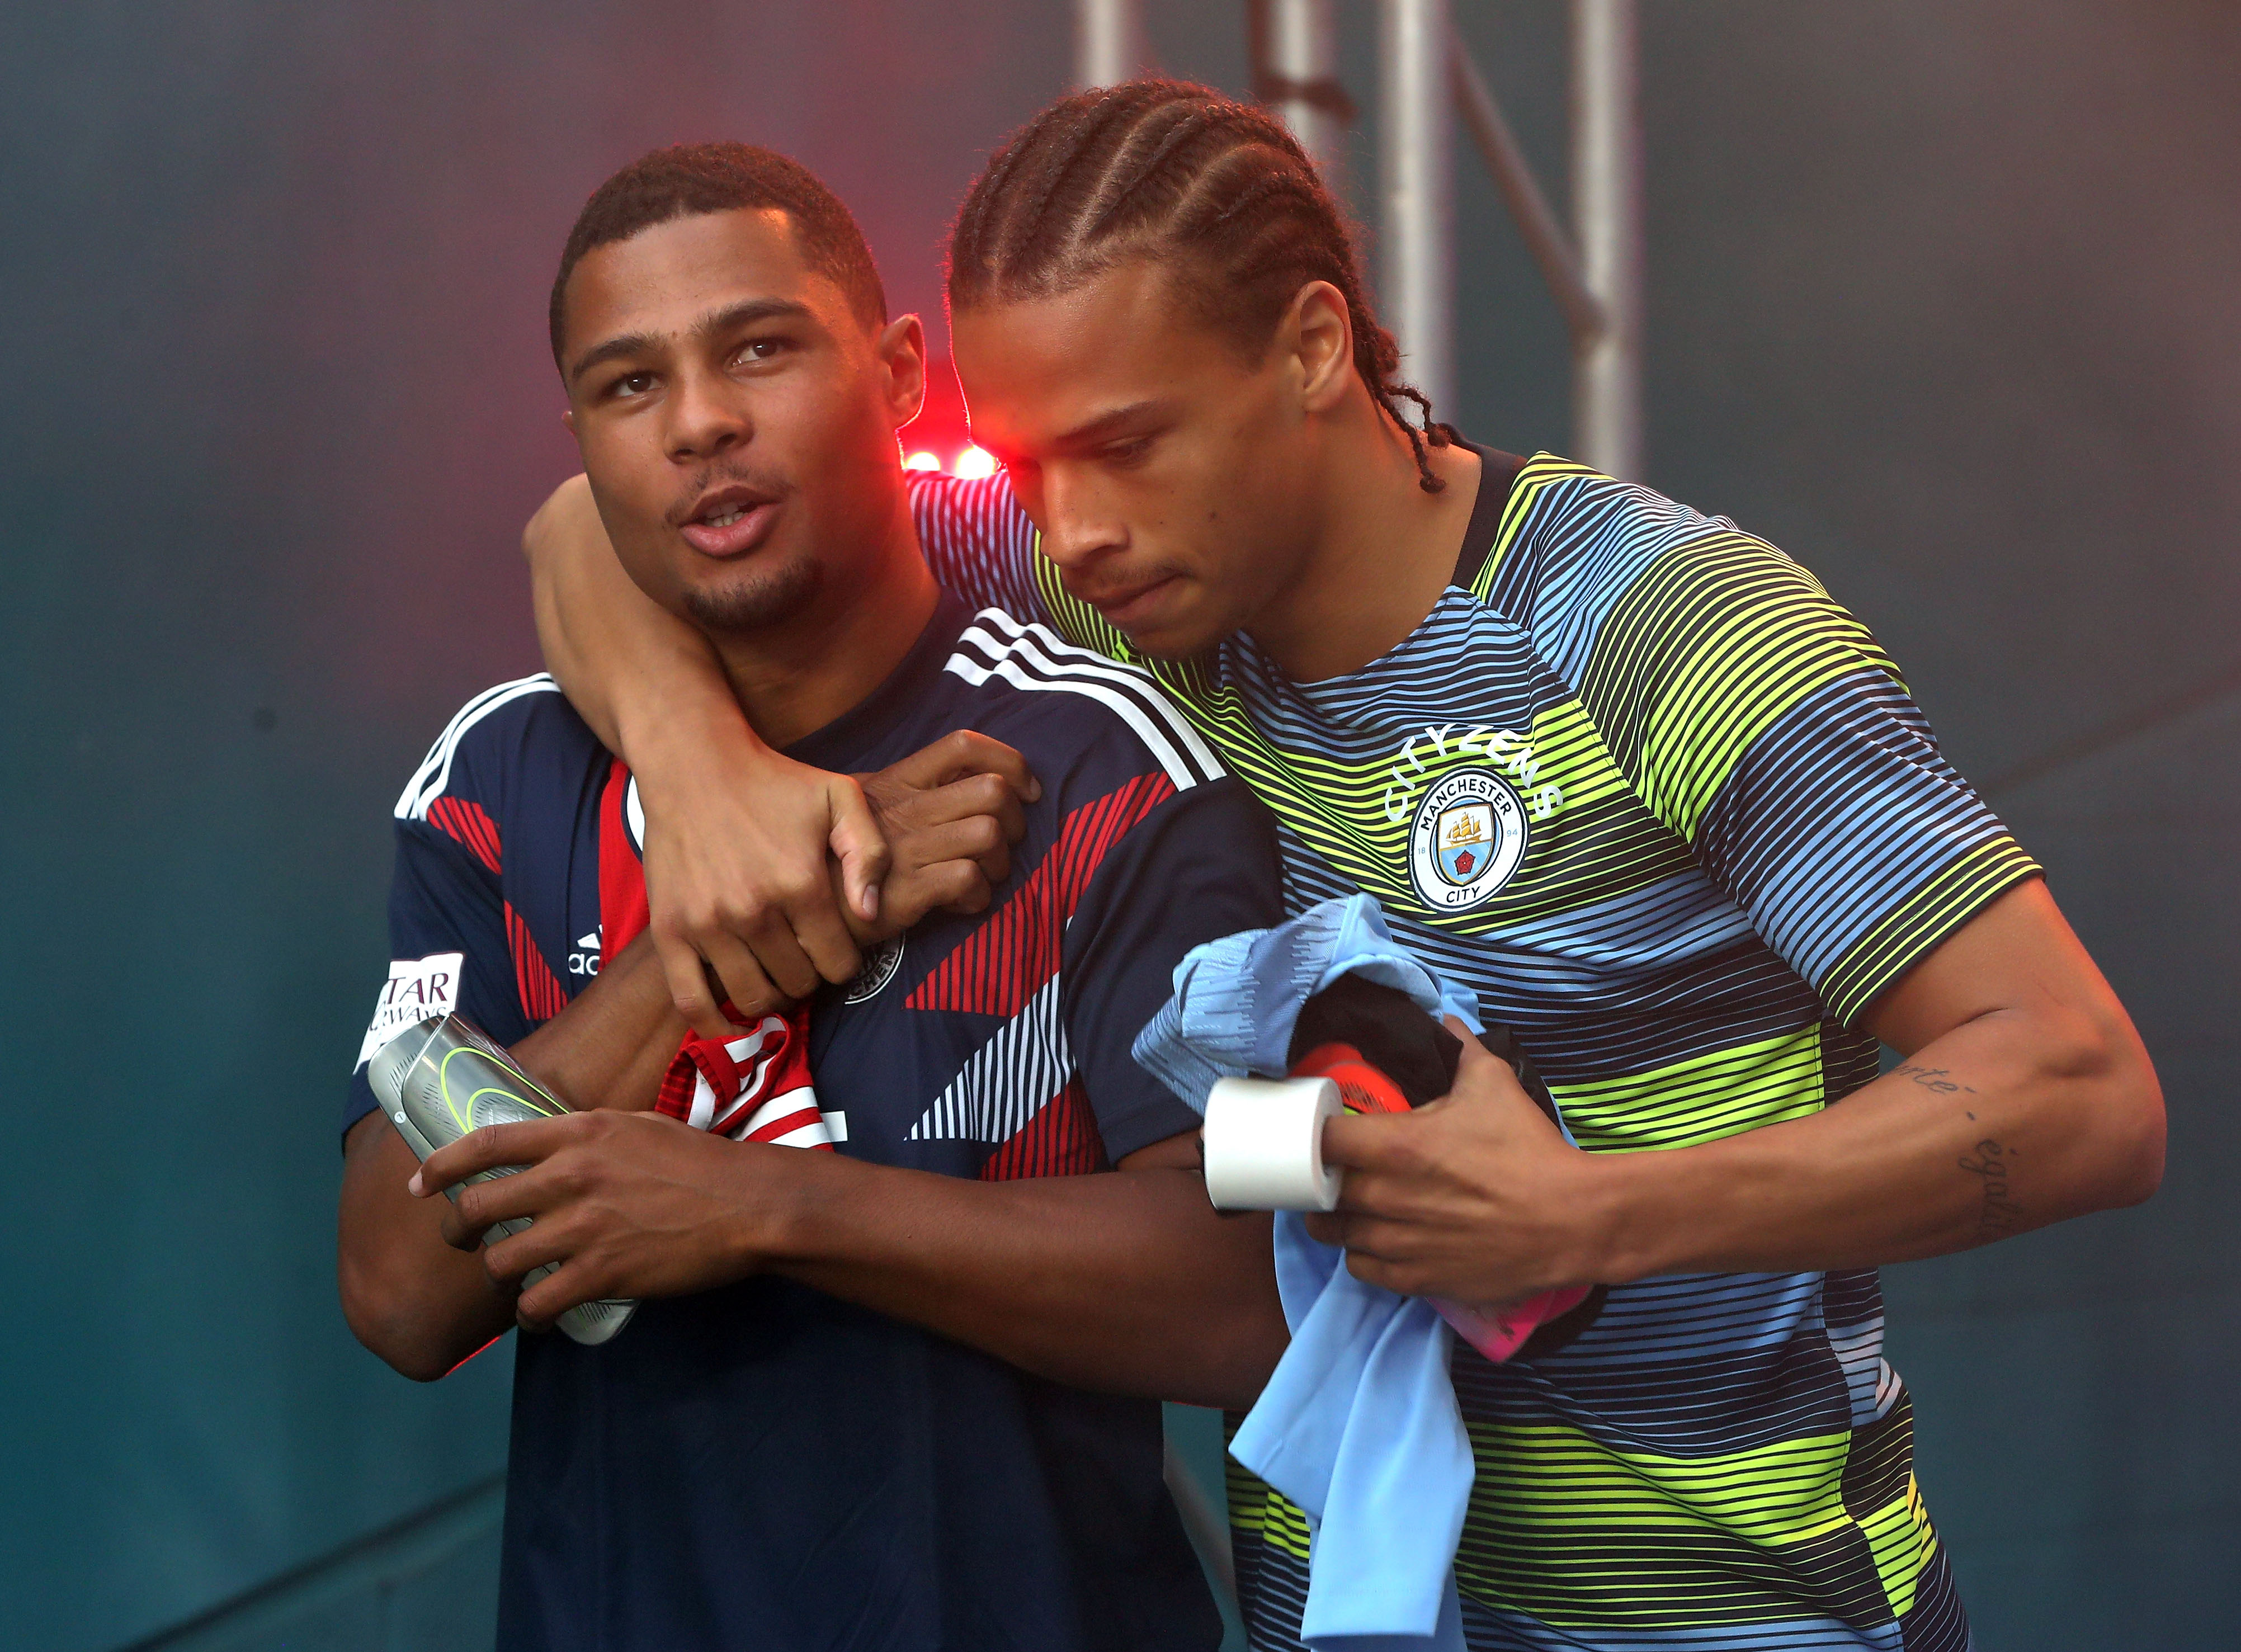 Former Arsenal star Serge Gnarby (L) wants International teammate Leroy Sane (R) to join him at Bayern. (Photo courtesy: AFP/Getty)